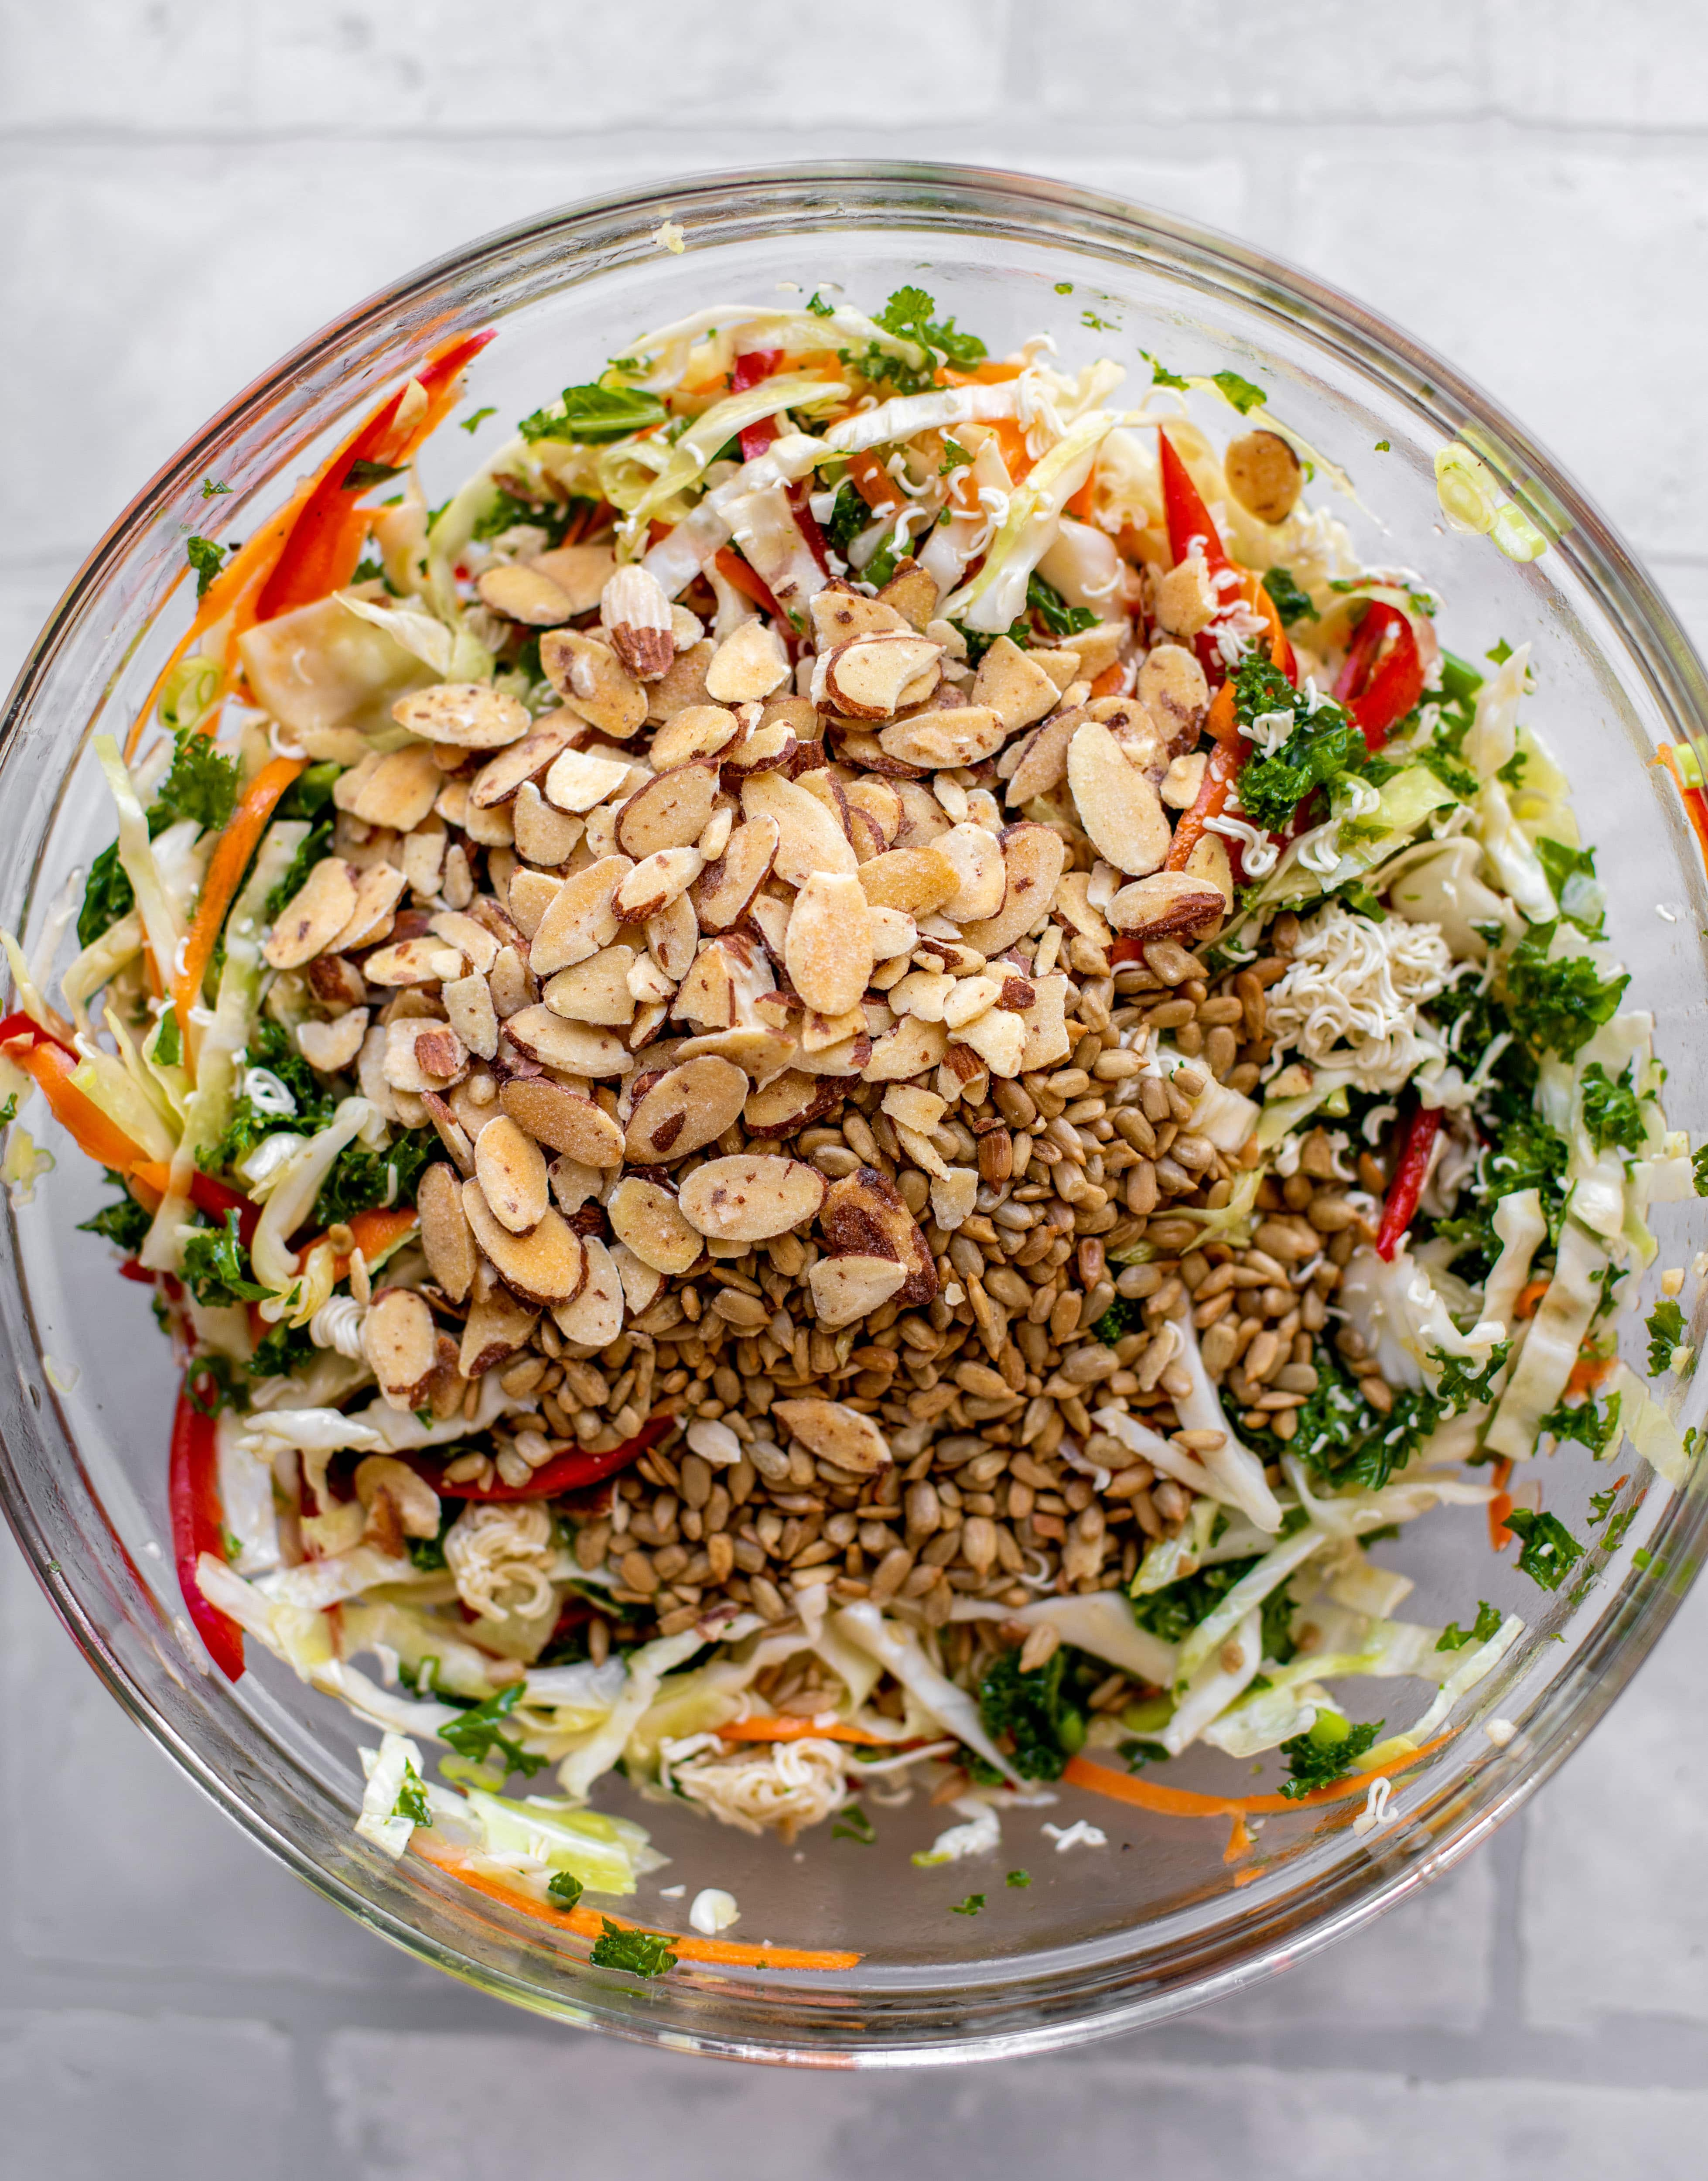 almonds and sunflower seeds on salad